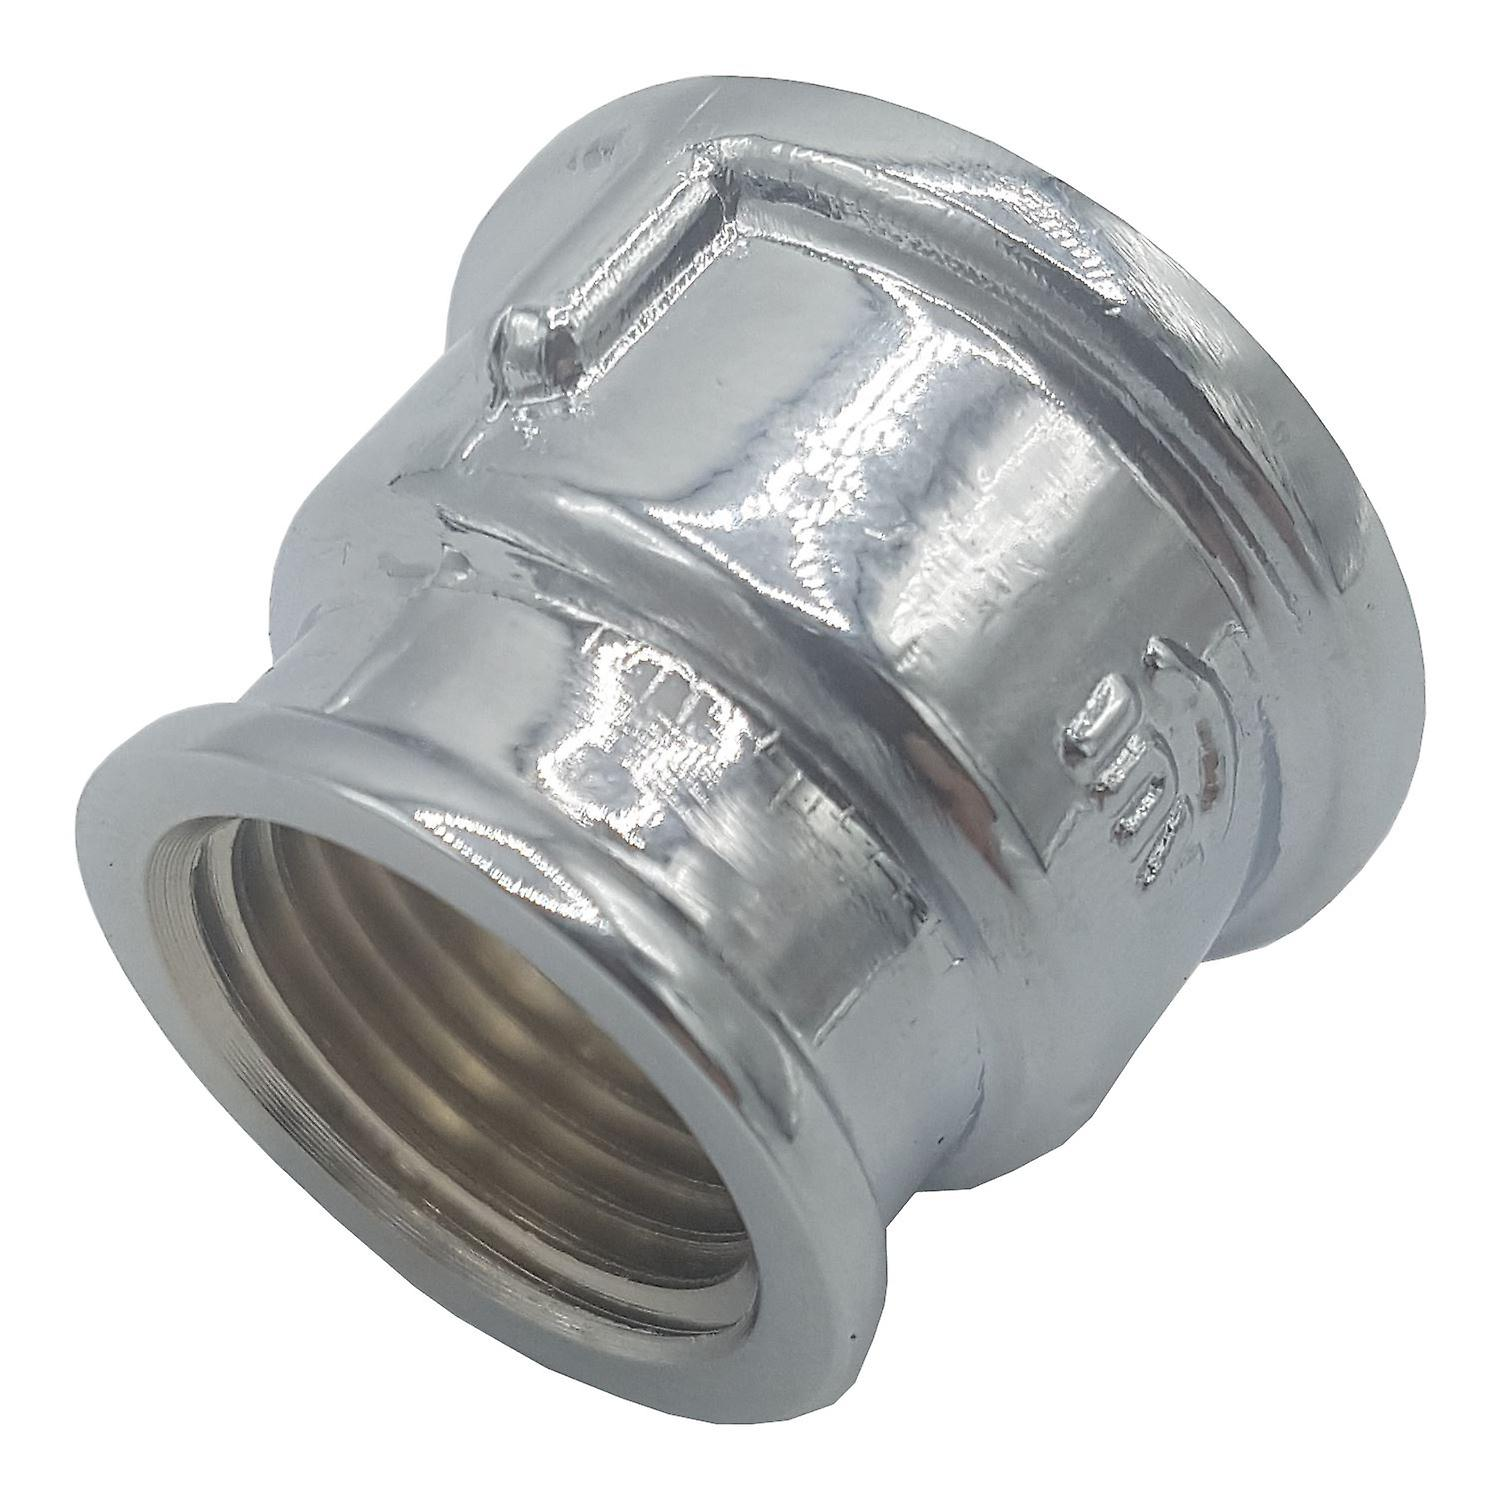 Pipe connection  female fittings muff chrome 1/2